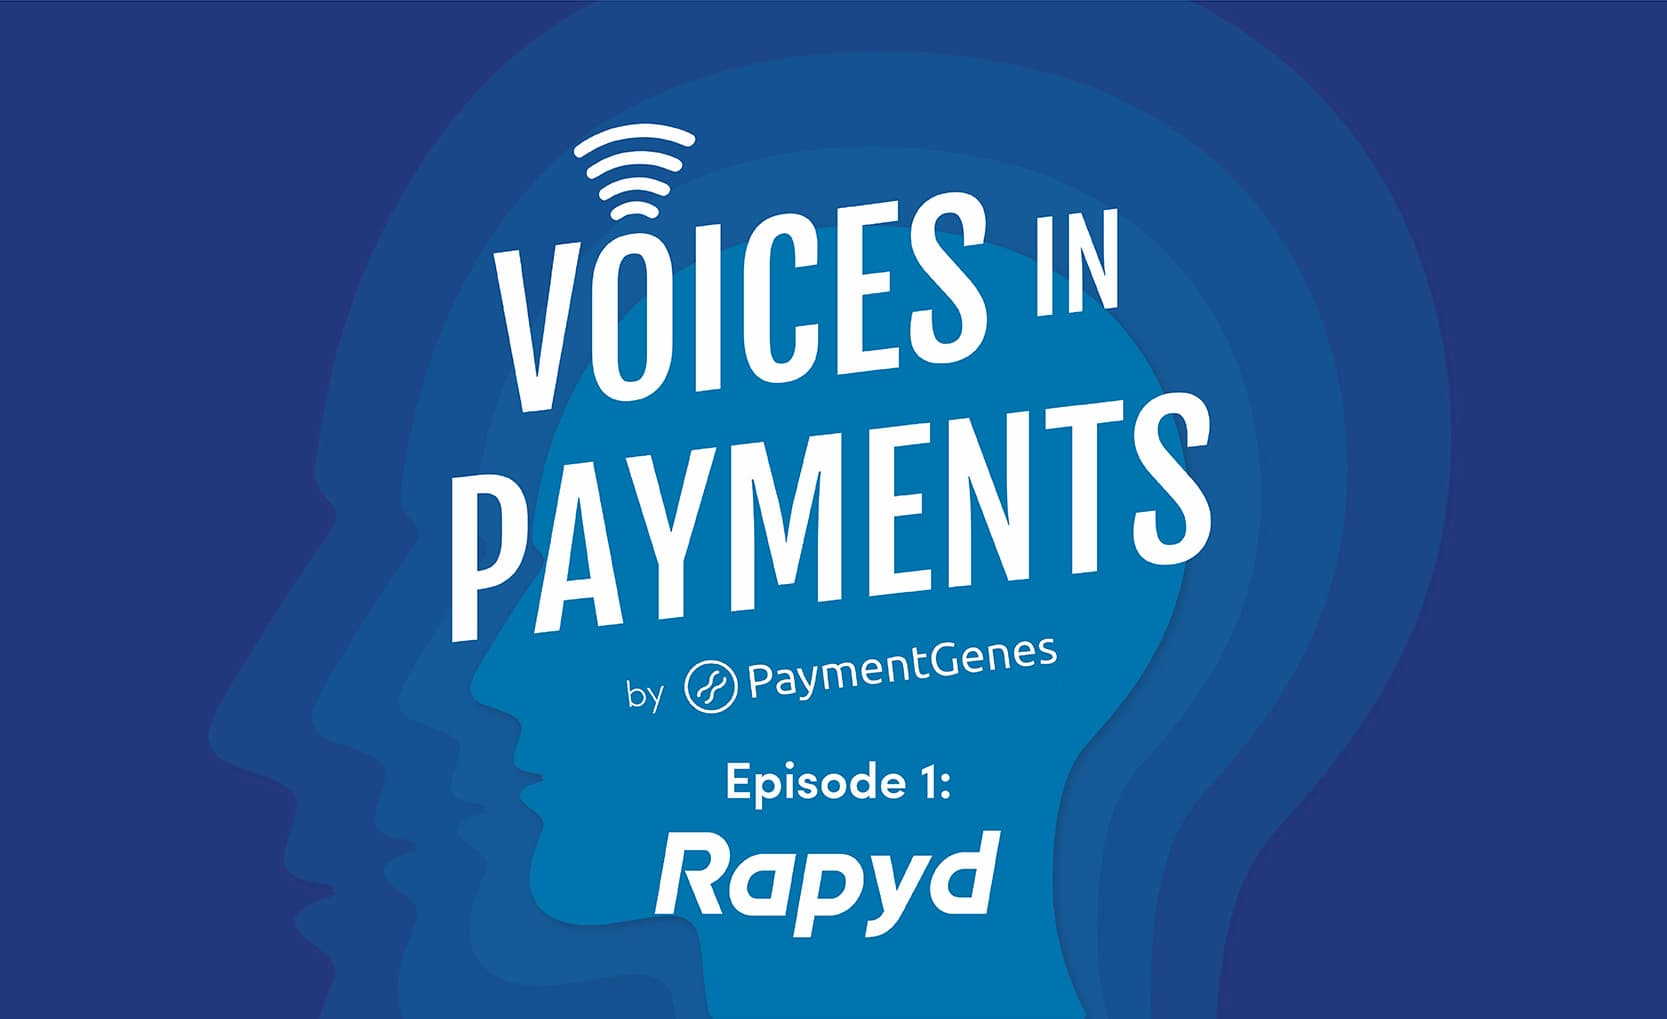 Rapyd Voices In Payments Podcast Episode Promotion